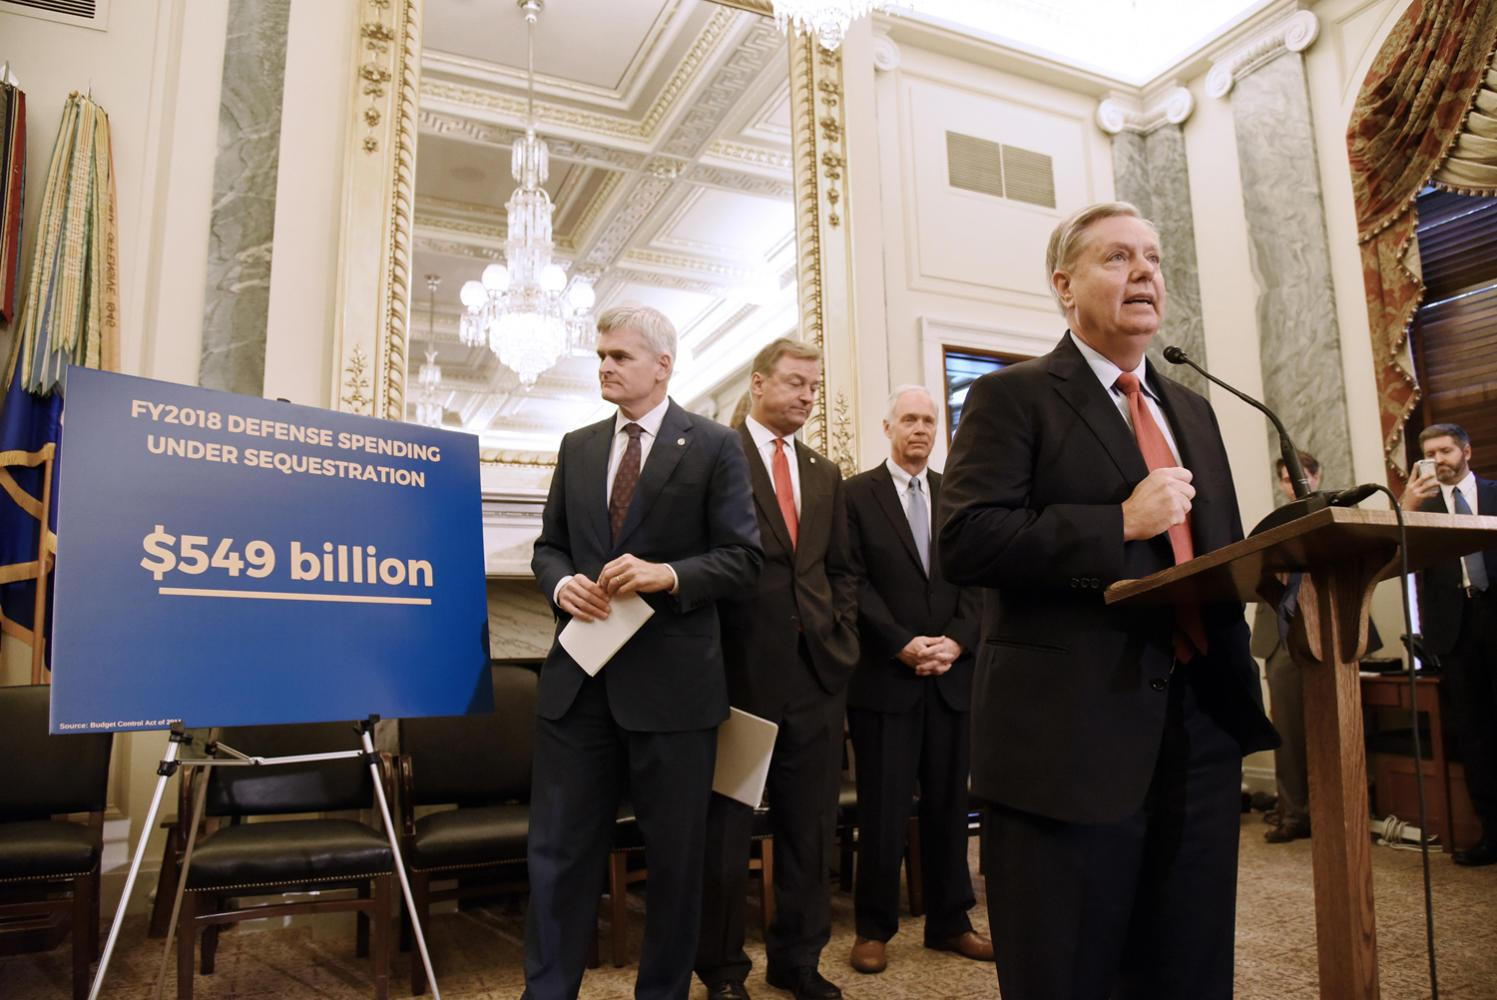 U.S. Sen. Lindsey Graham (R-S.C.) speaks as Sen. Bill Cassidy (R-La.), Sen. Dean Heller (R-Nev.), Sen. Ron Johnson (R-Wis.) listen during a news conference on health care on Wednesday, Sept. 13, 2017 on Capitol Hill in Washington, D.C. (Olivier Douliery/Abaca Press/TNS)